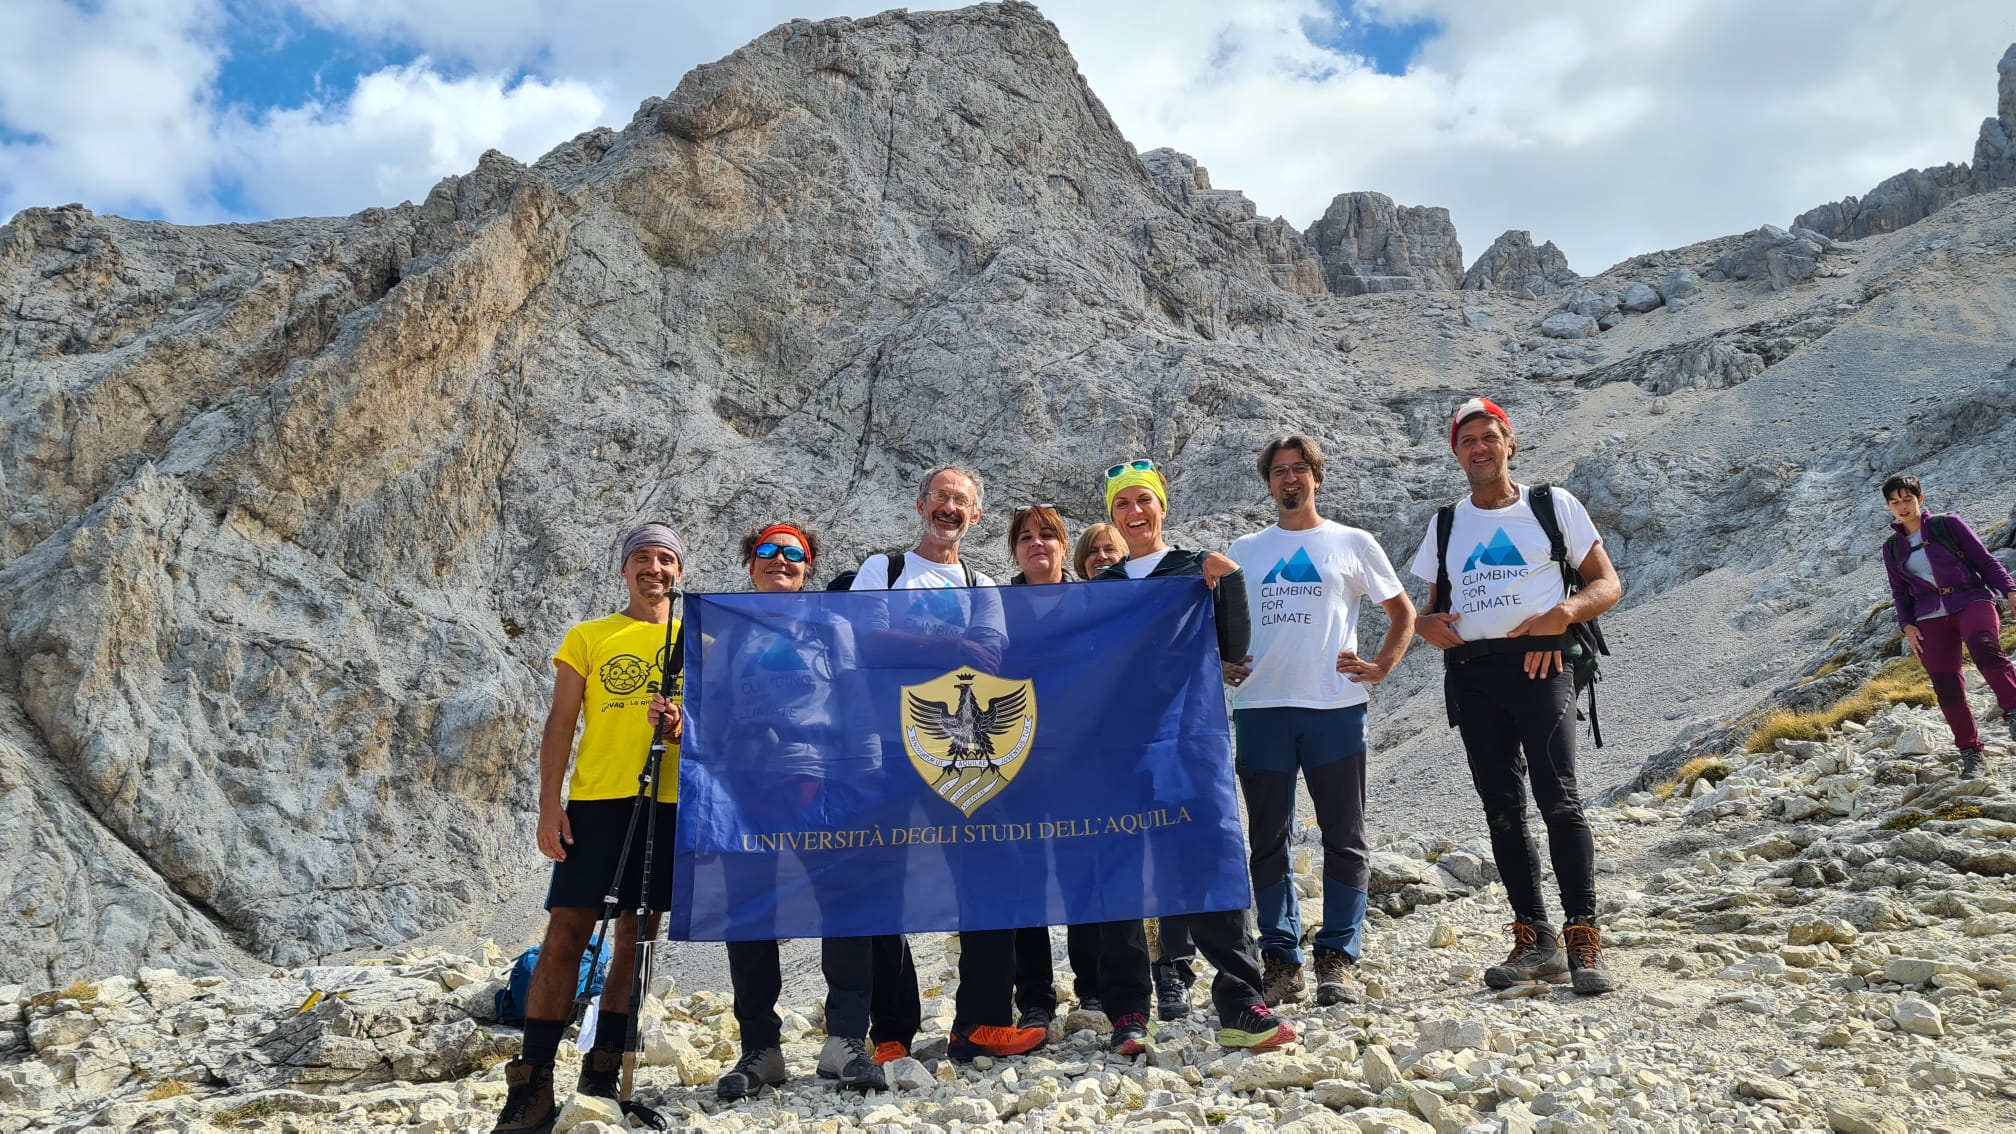 Climbing for Climate Univaq